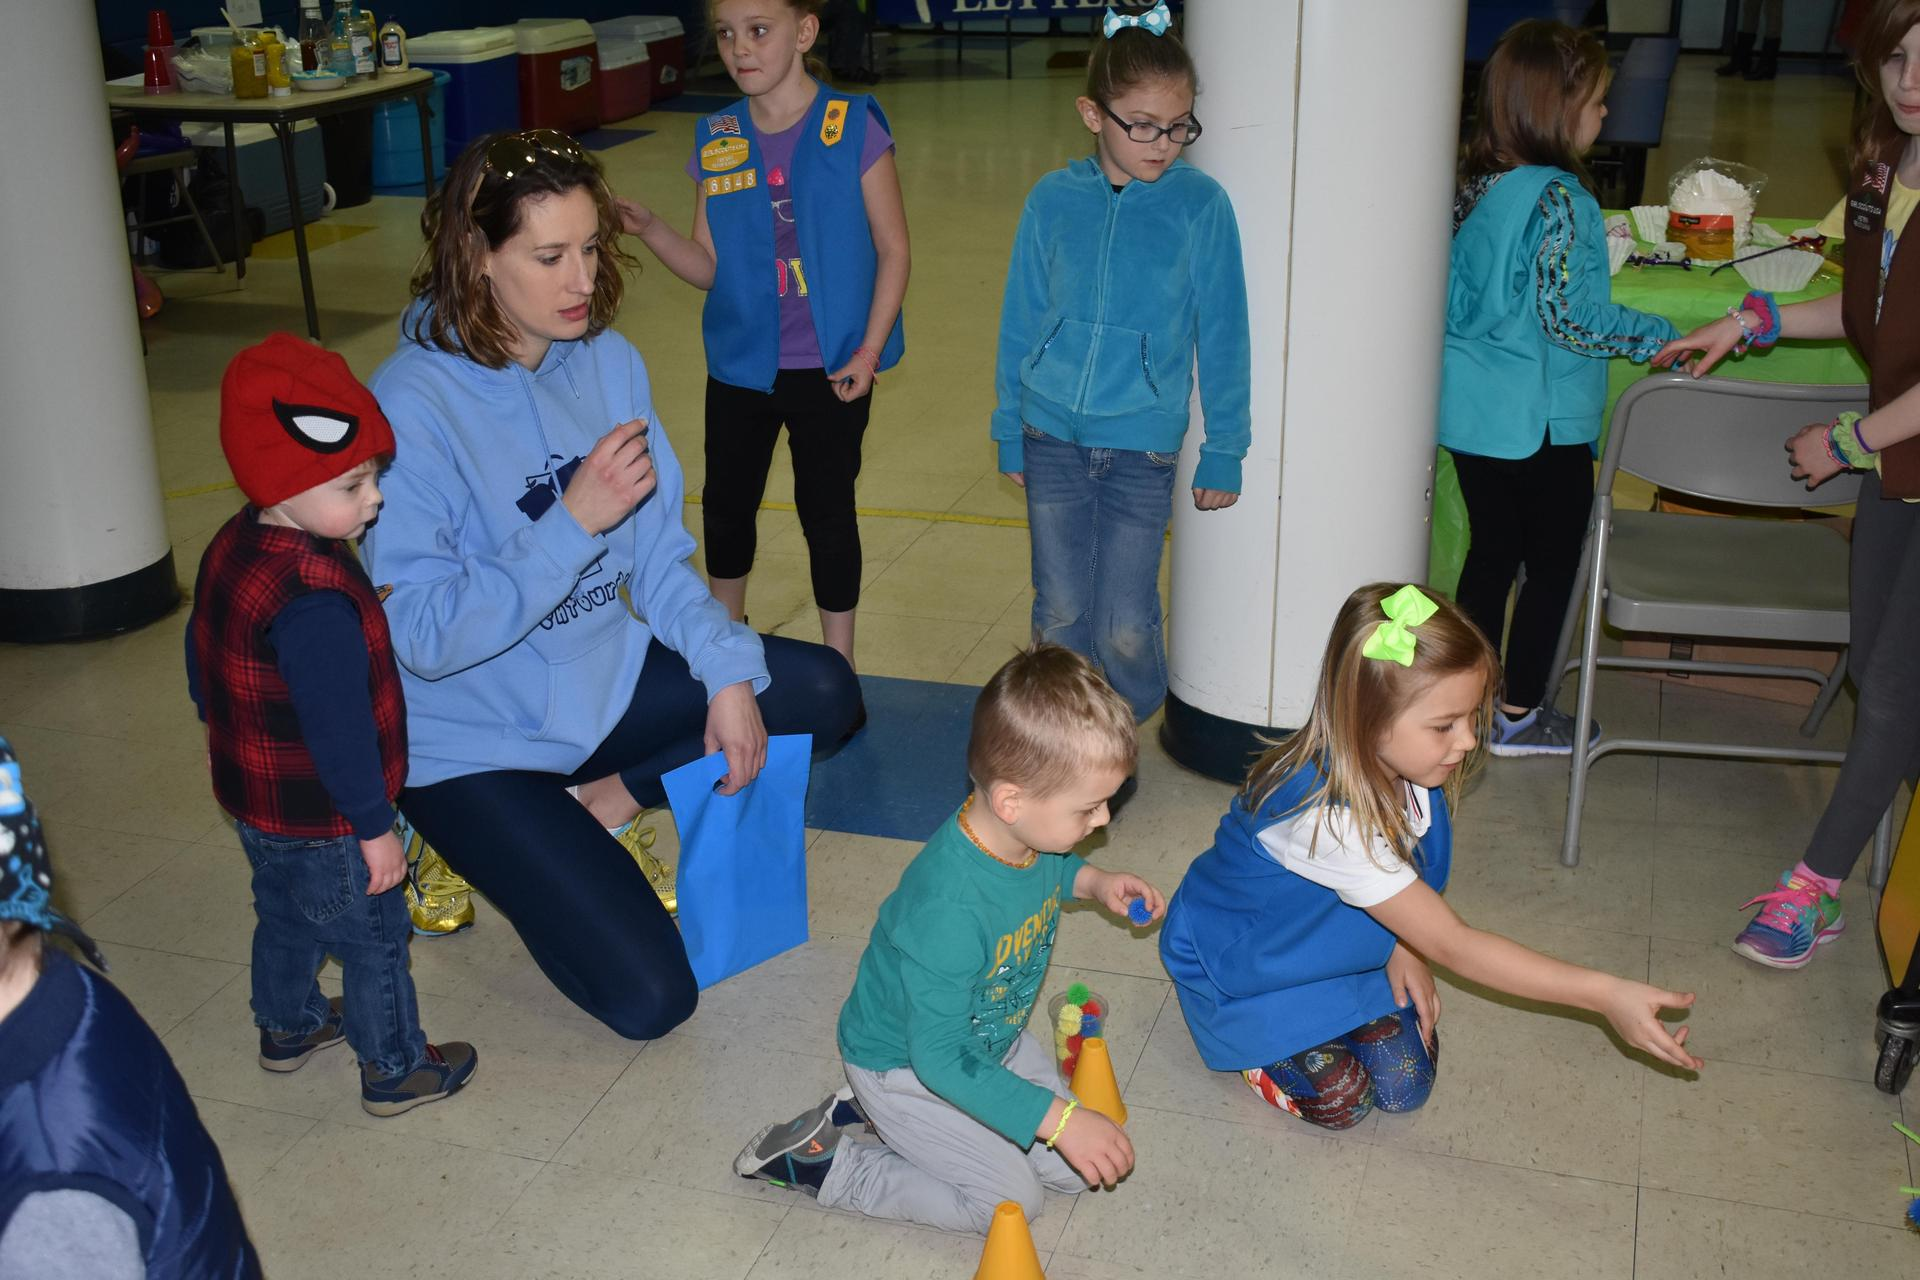 Mrs. Herncane helping kids with games